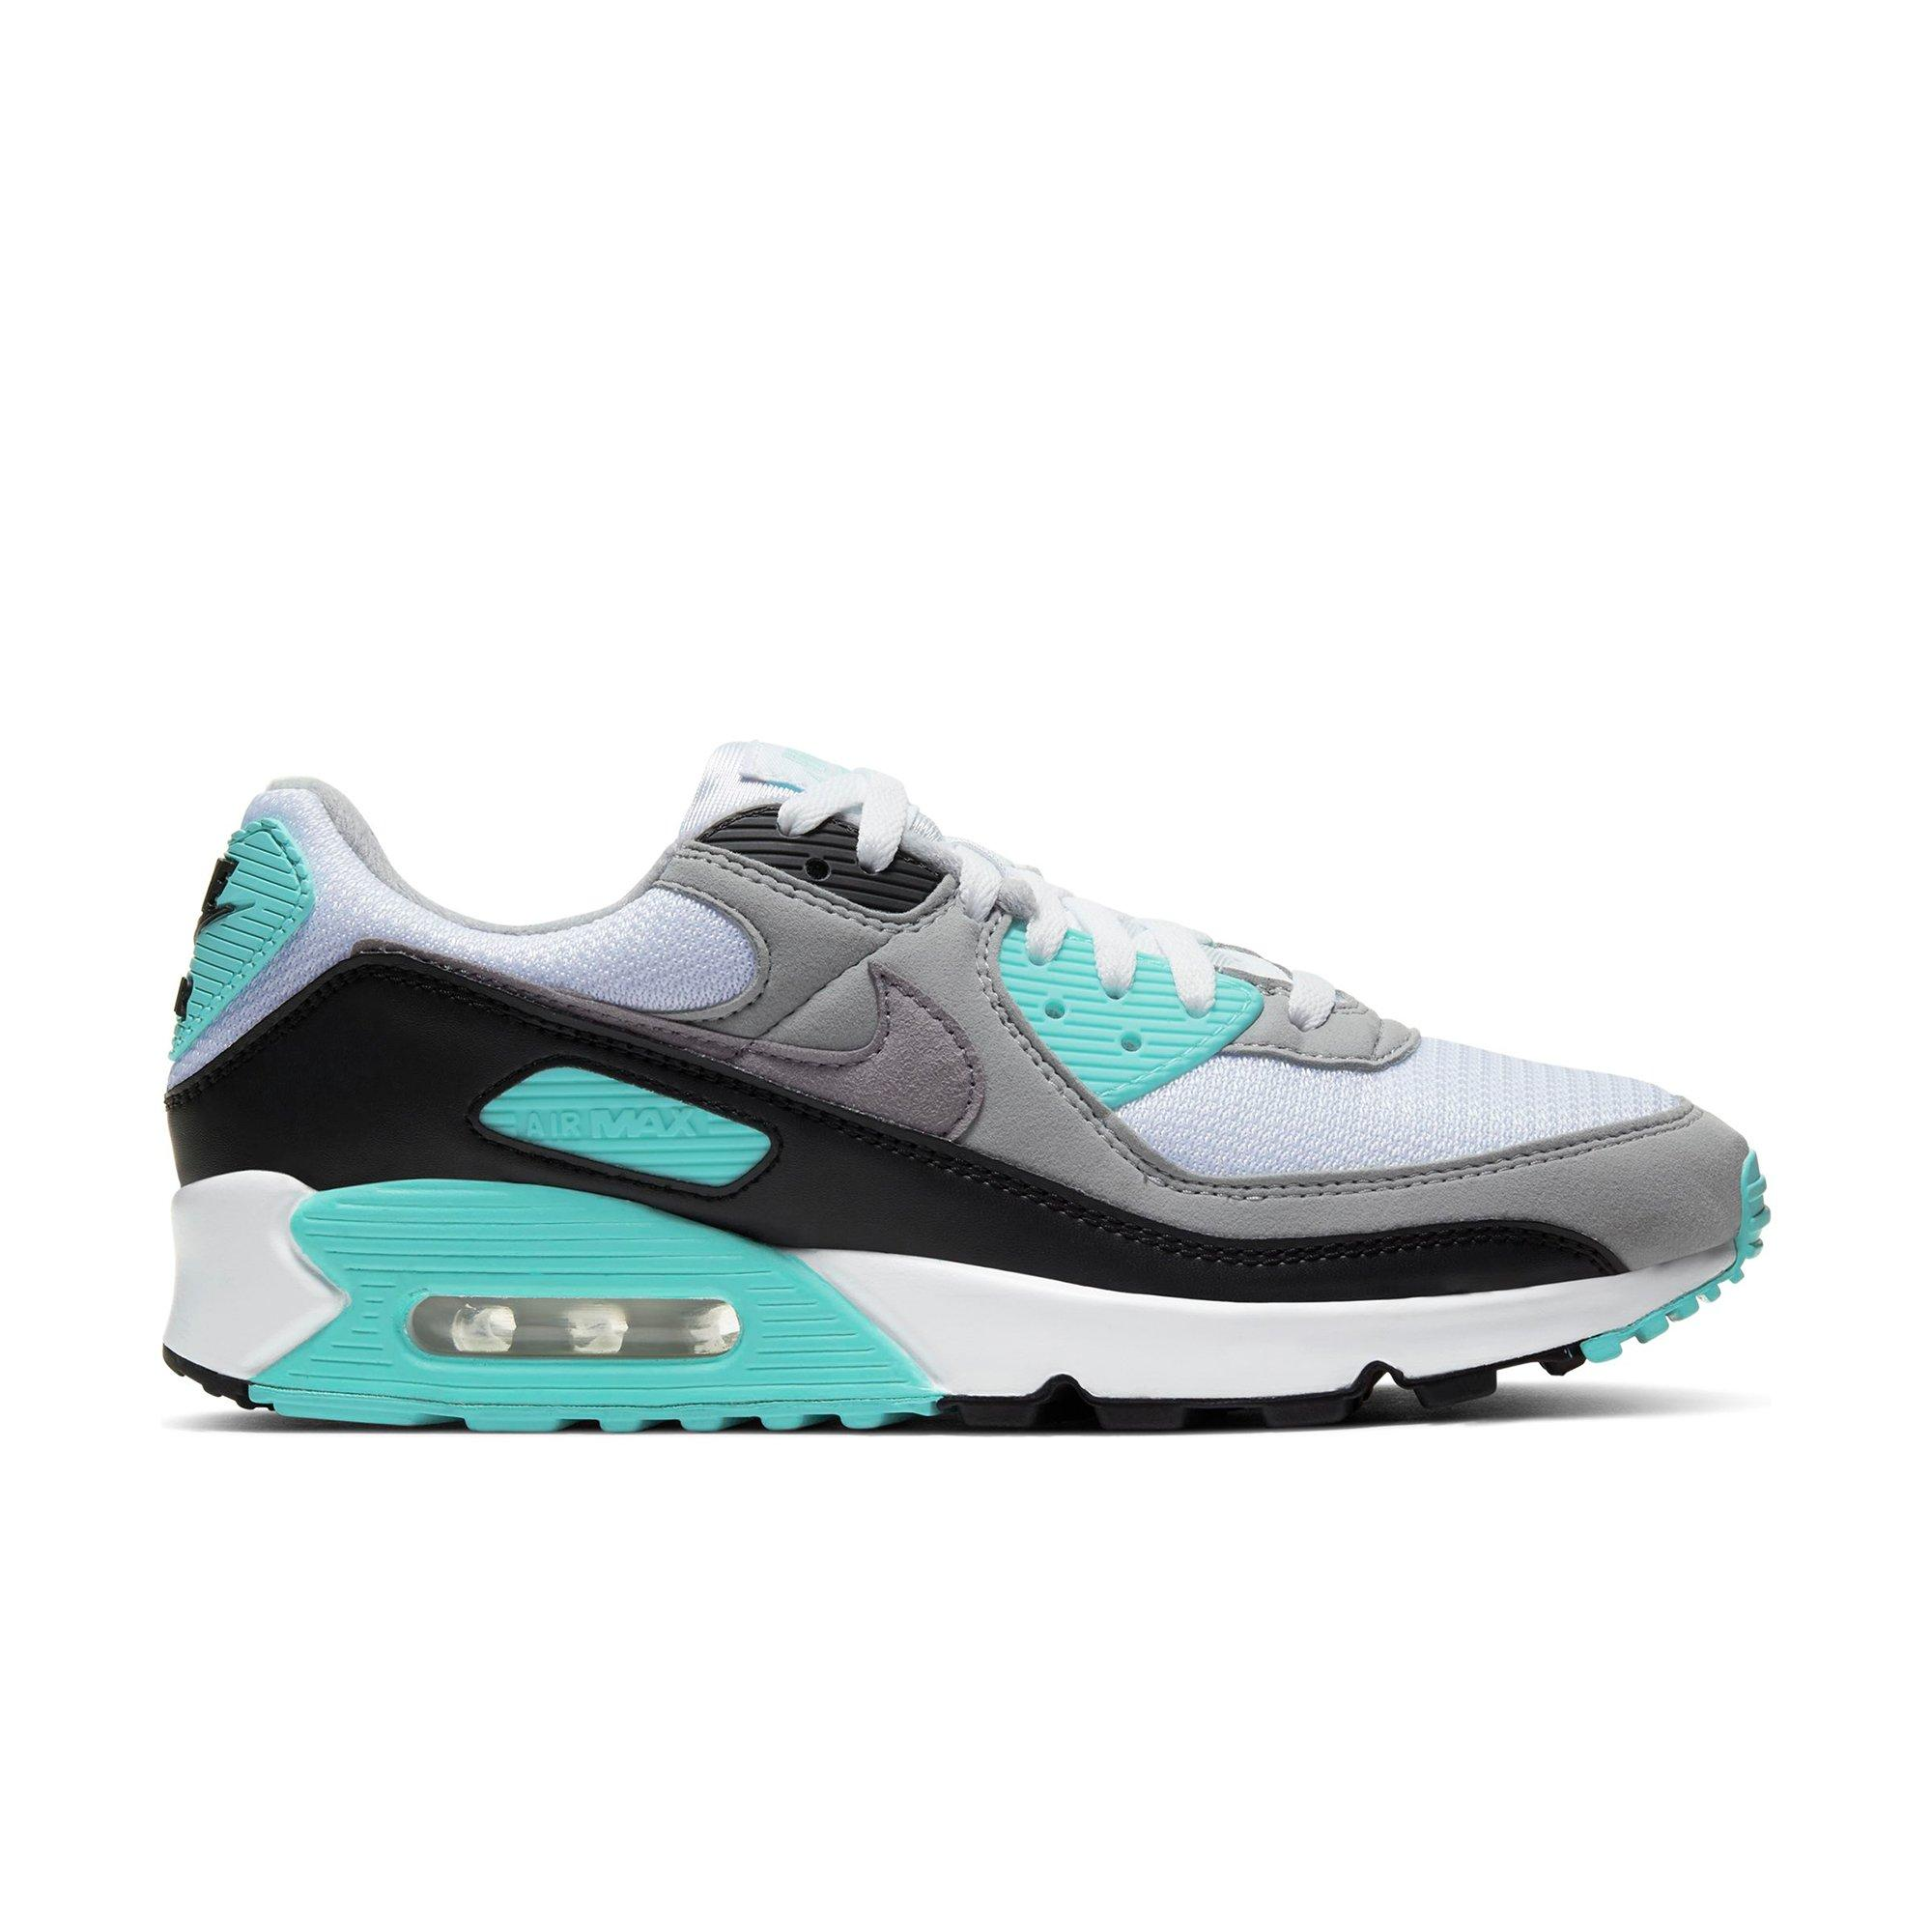 nike air max homme turquoise